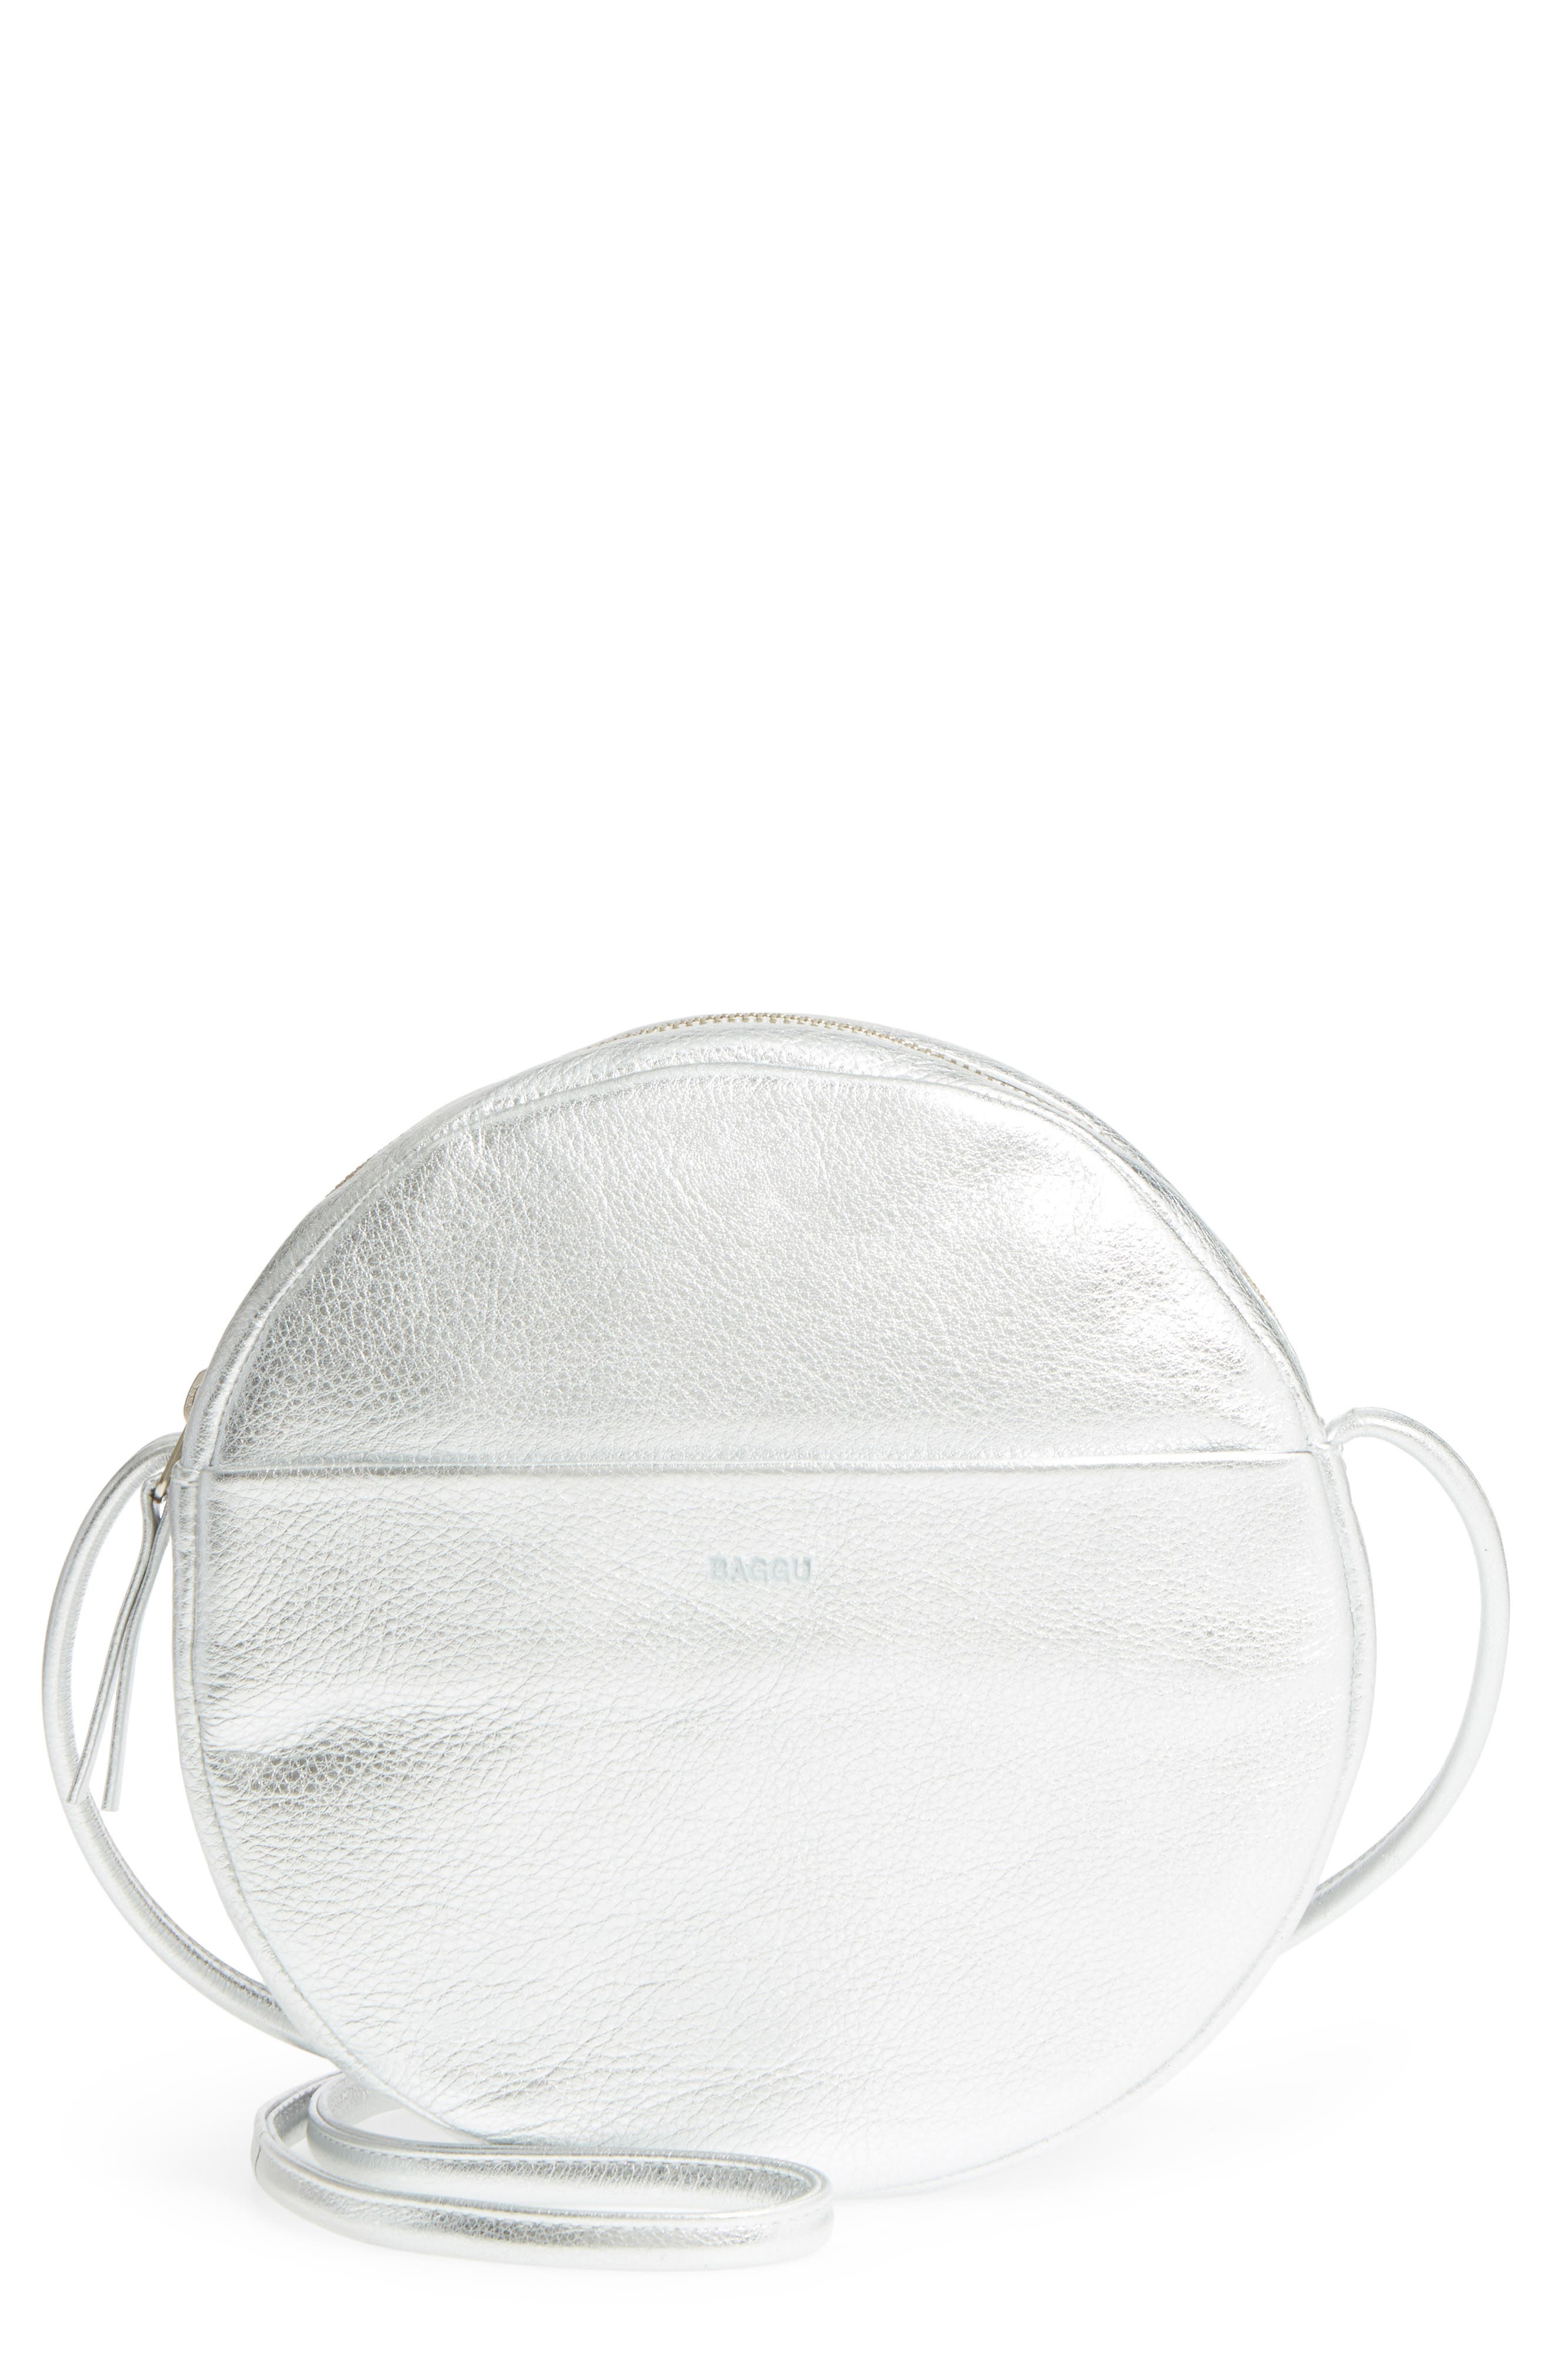 Circle Calfskin Leather Crossbody Bag,                             Main thumbnail 1, color,                             Silver